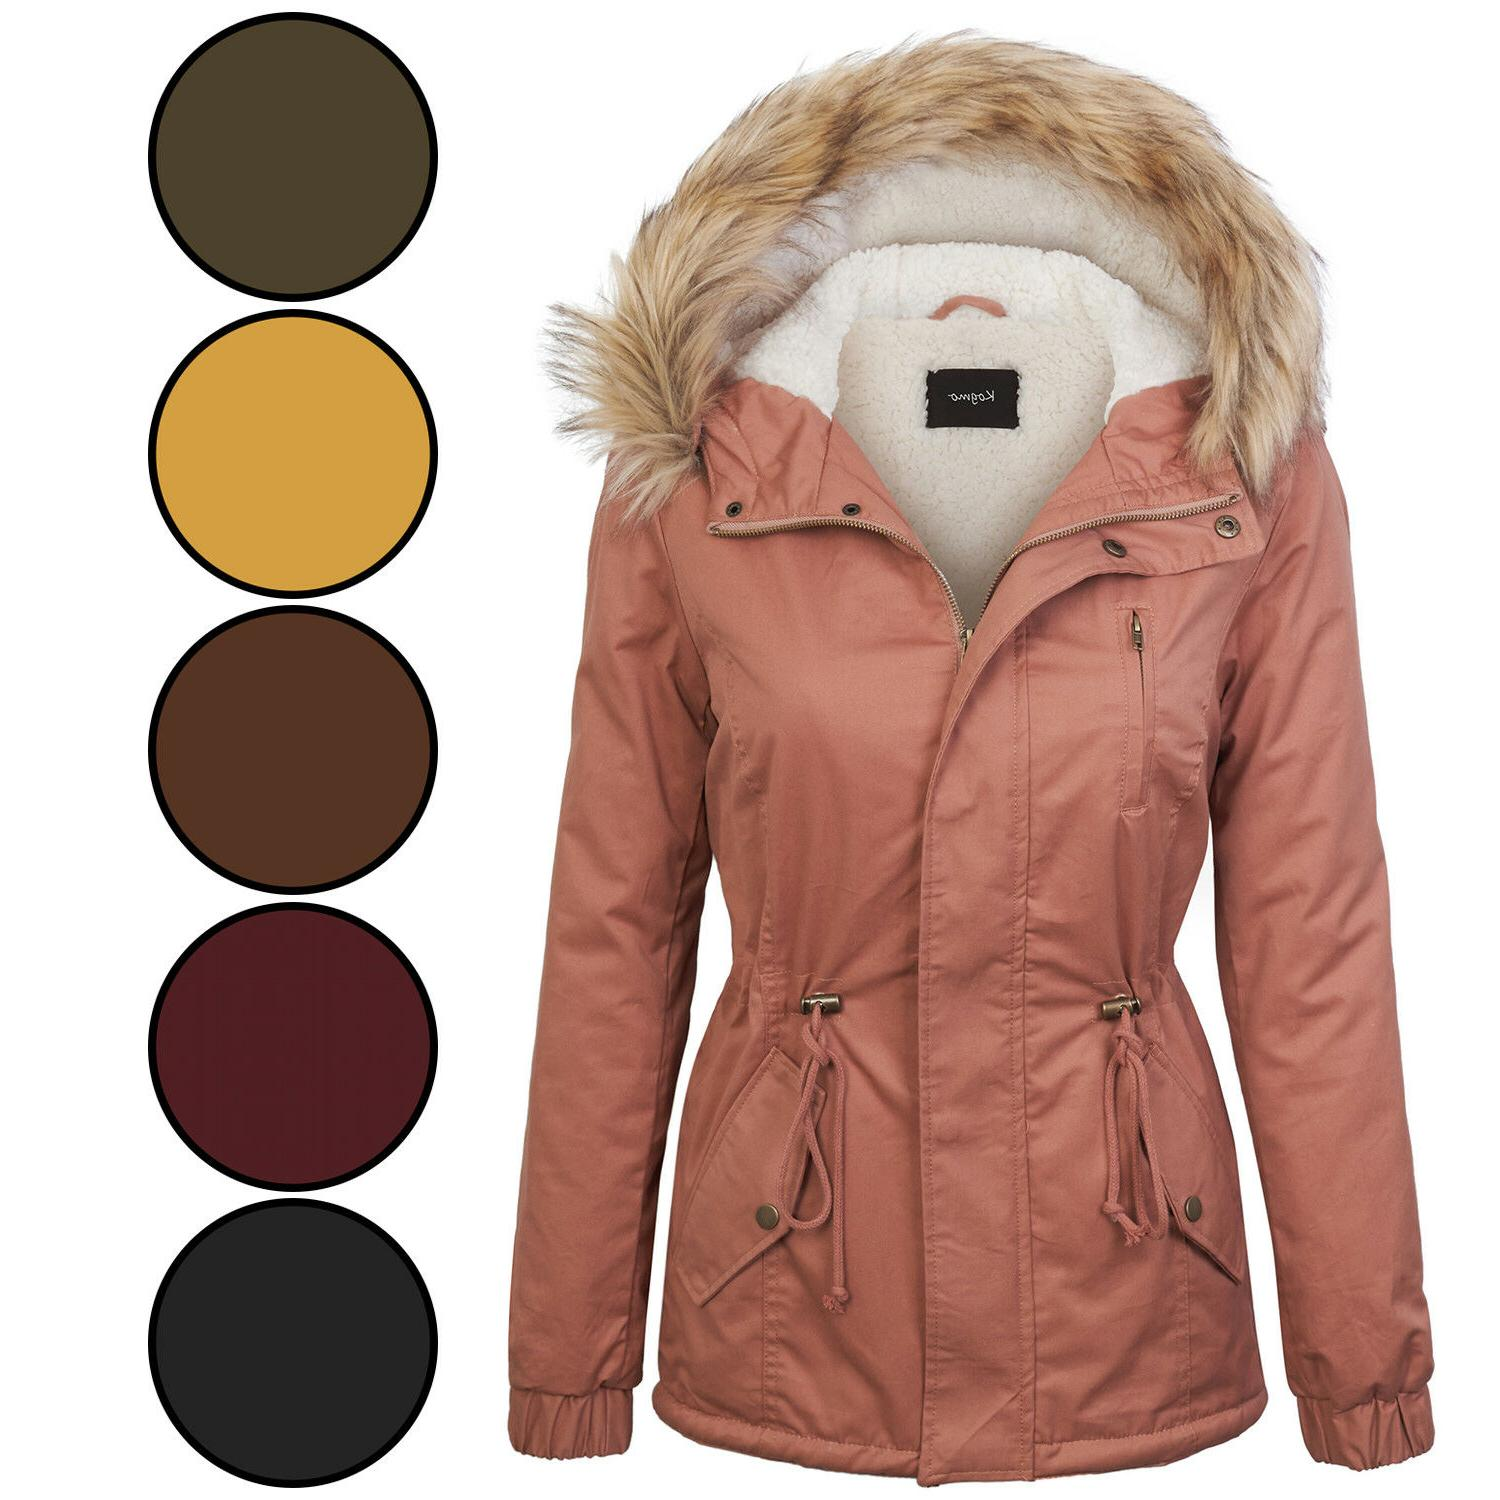 KOGMO Womens Sherpa Lined Zip Up Anorak Jacket Parka with Fu